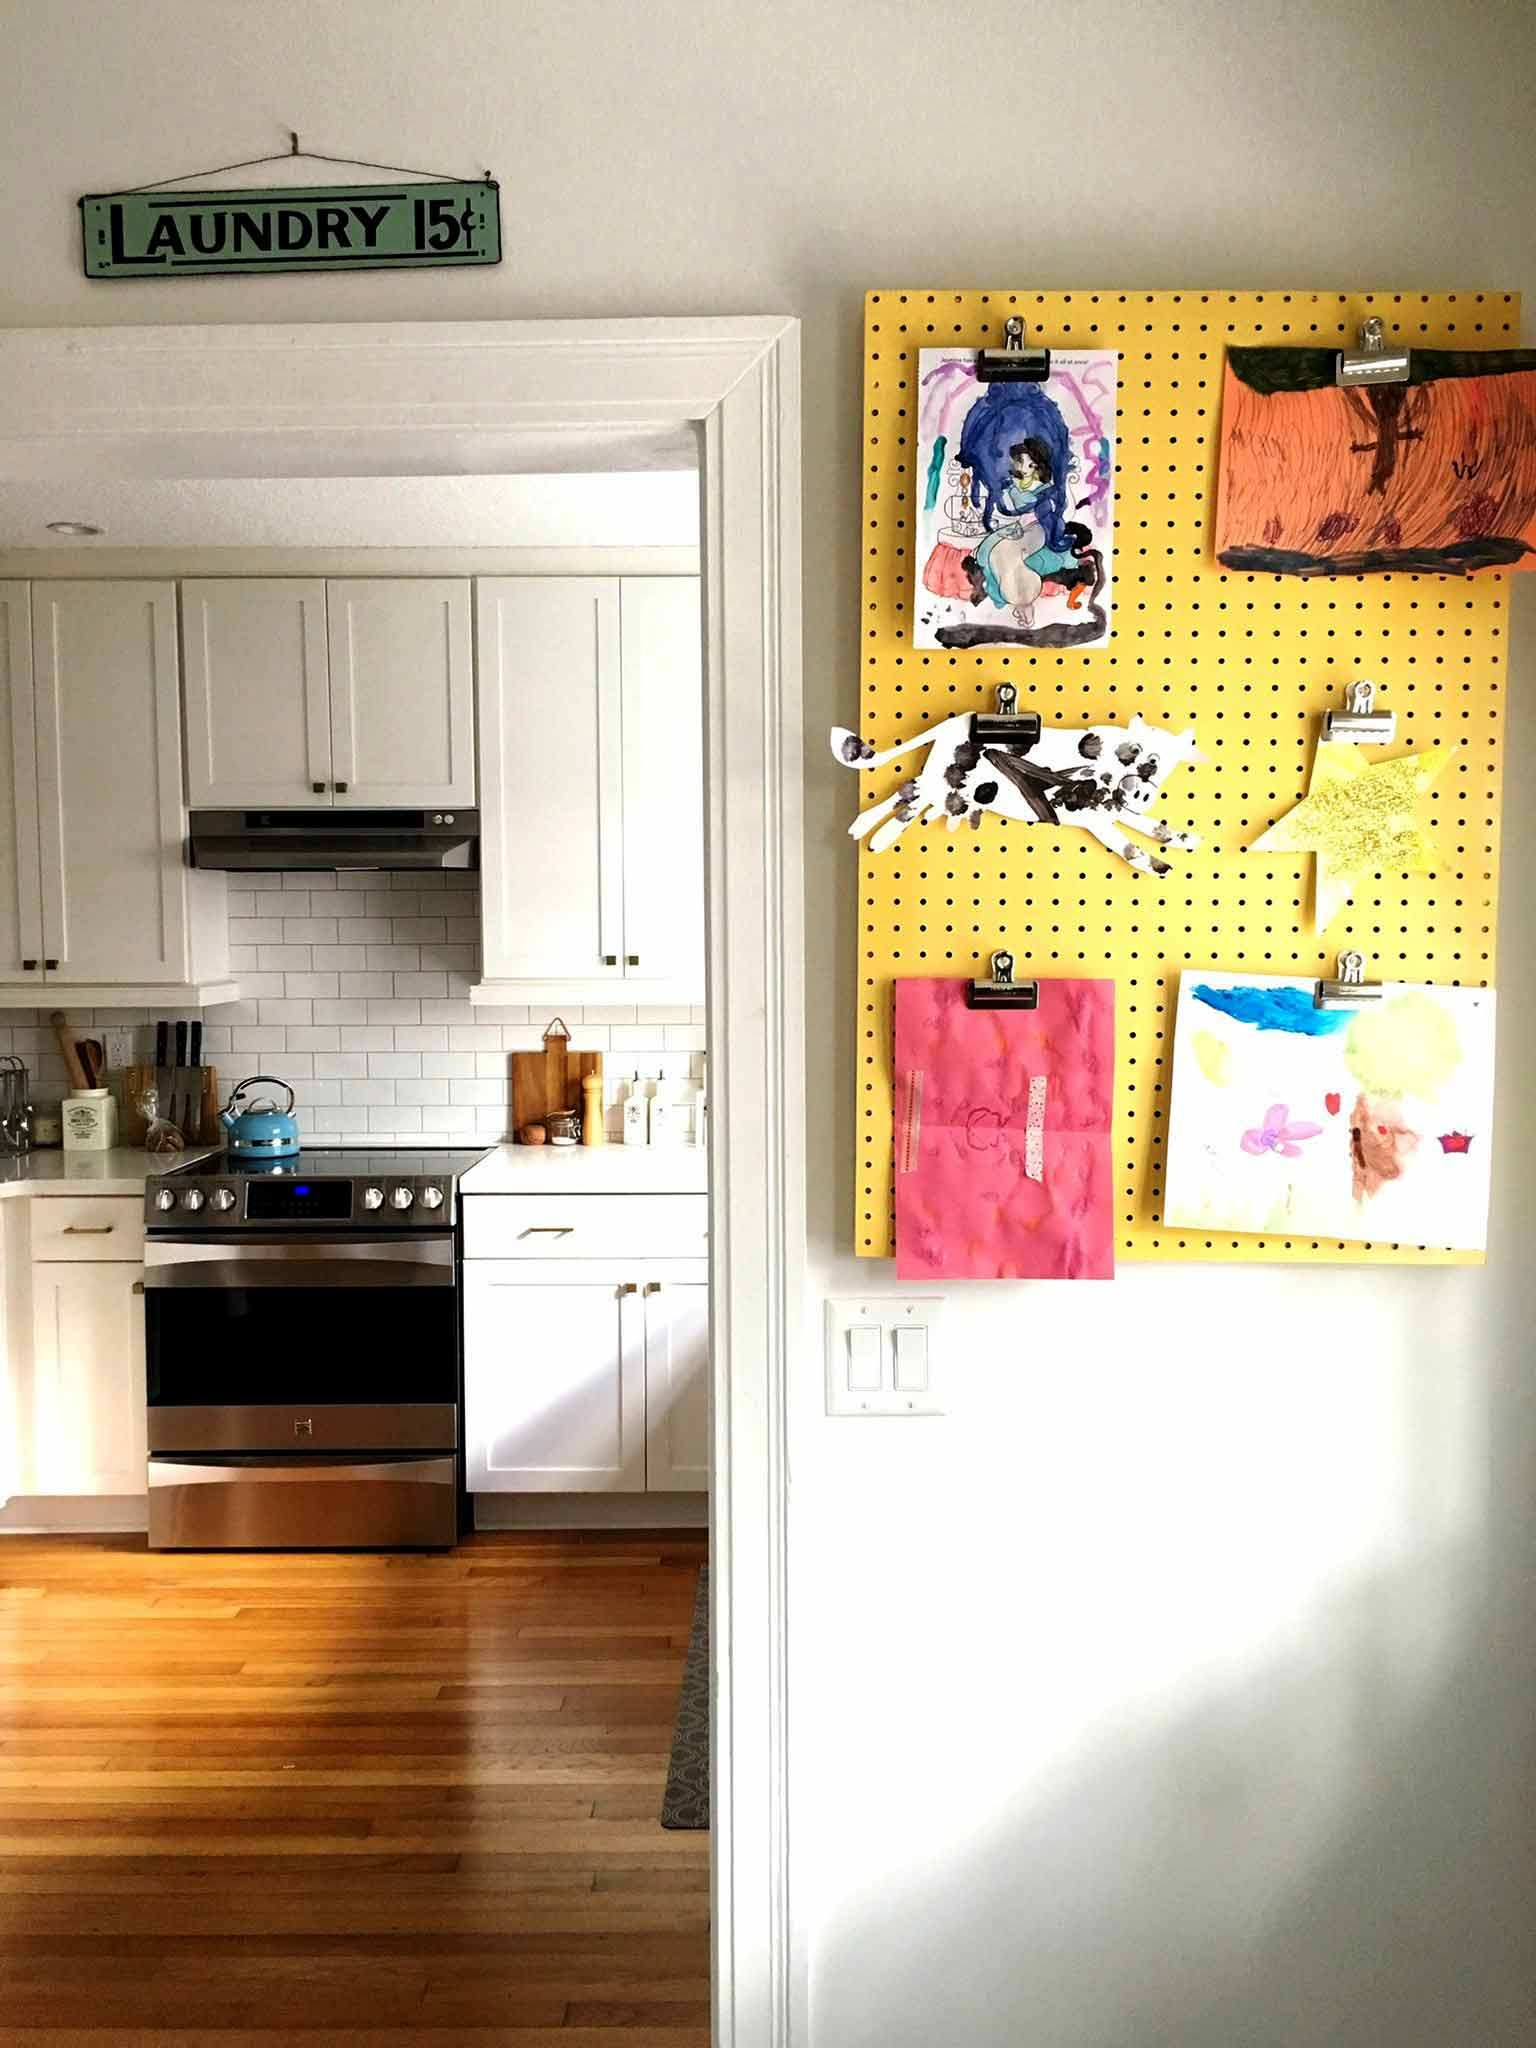 Pegboard display board - 4 simple steps to keeping your kids' artwork organized - That Homebird Life Blog